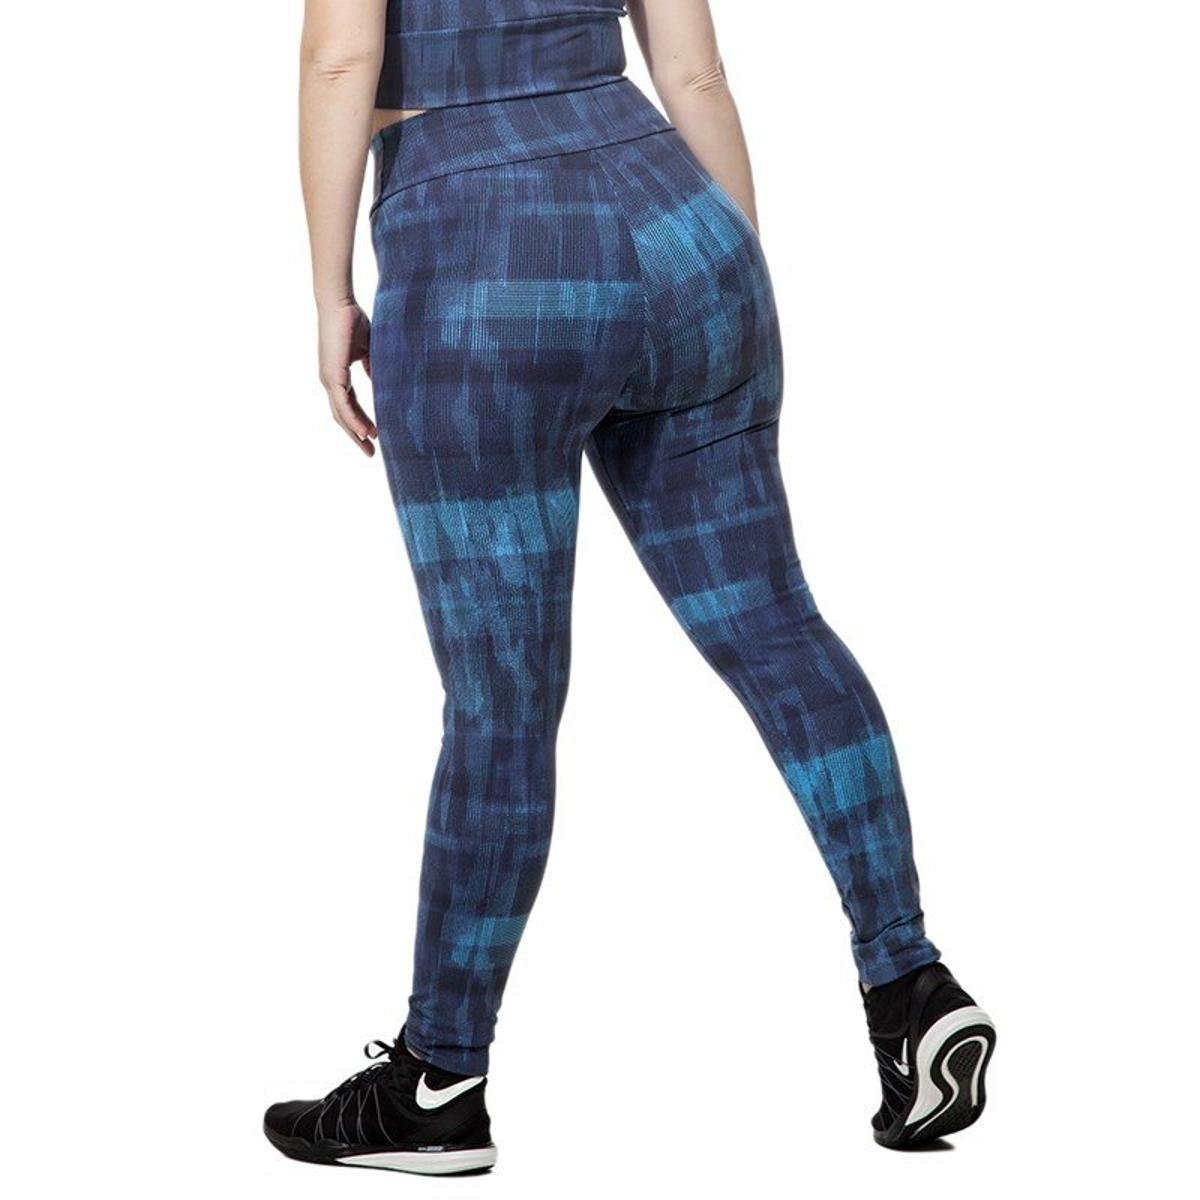 e Marinho Legging Calça Plus Azul Movimento Supplex amp; Cia 8d0qwd